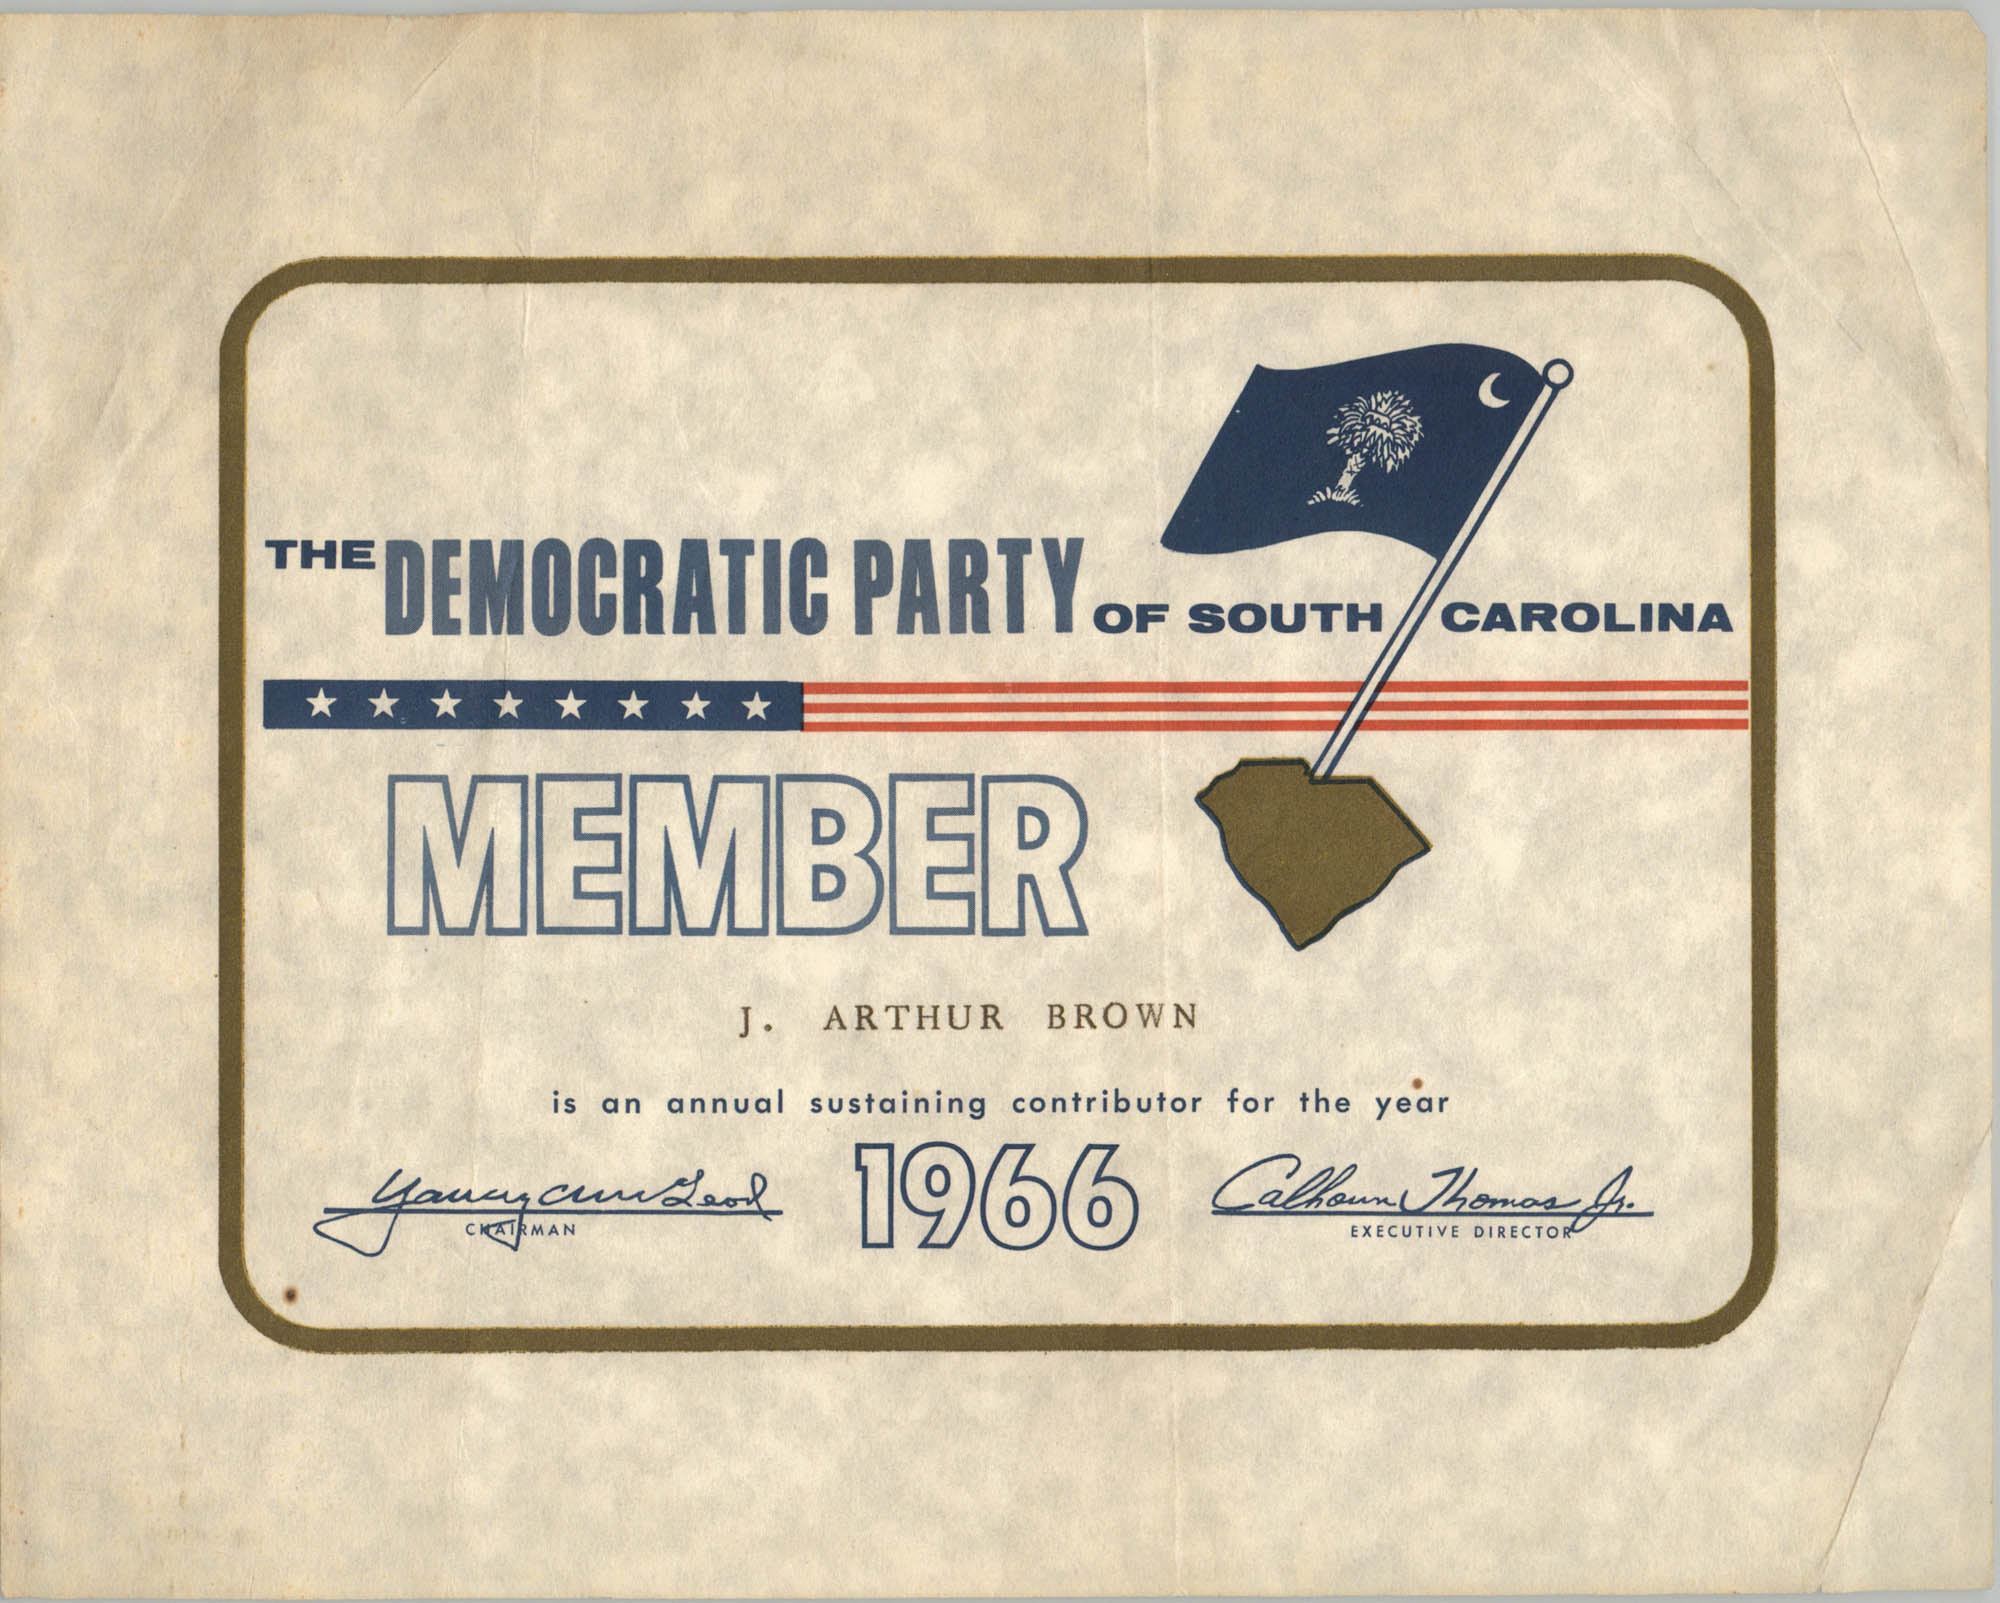 The Democratic Party of South Carolina Membership Card for J. Arthur Brown